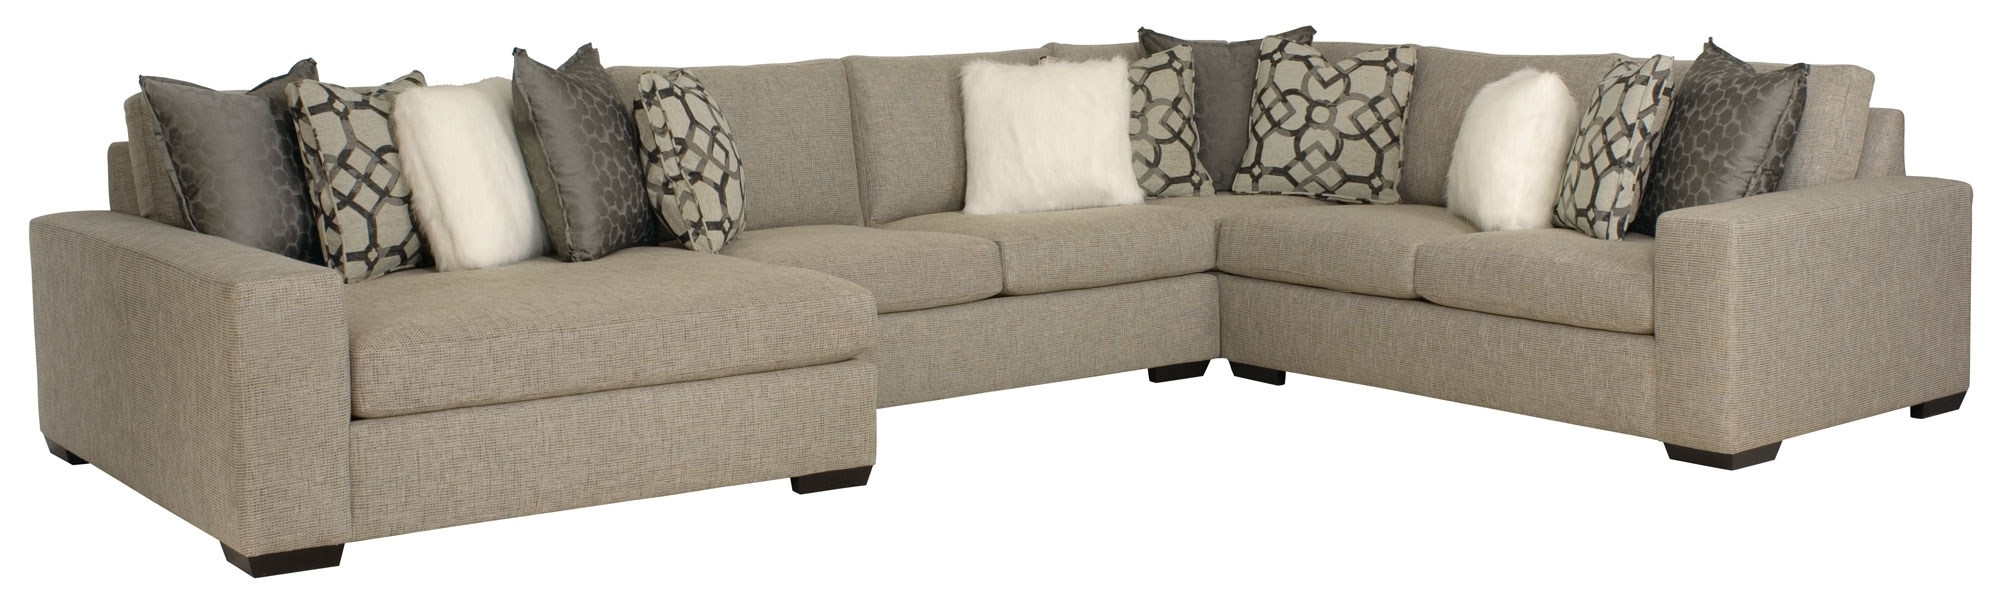 Sectional Sofa Design: Best Selling Bernhardt Sectional Sofa Regarding Trendy Orlando Sectional Sofas (View 15 of 20)